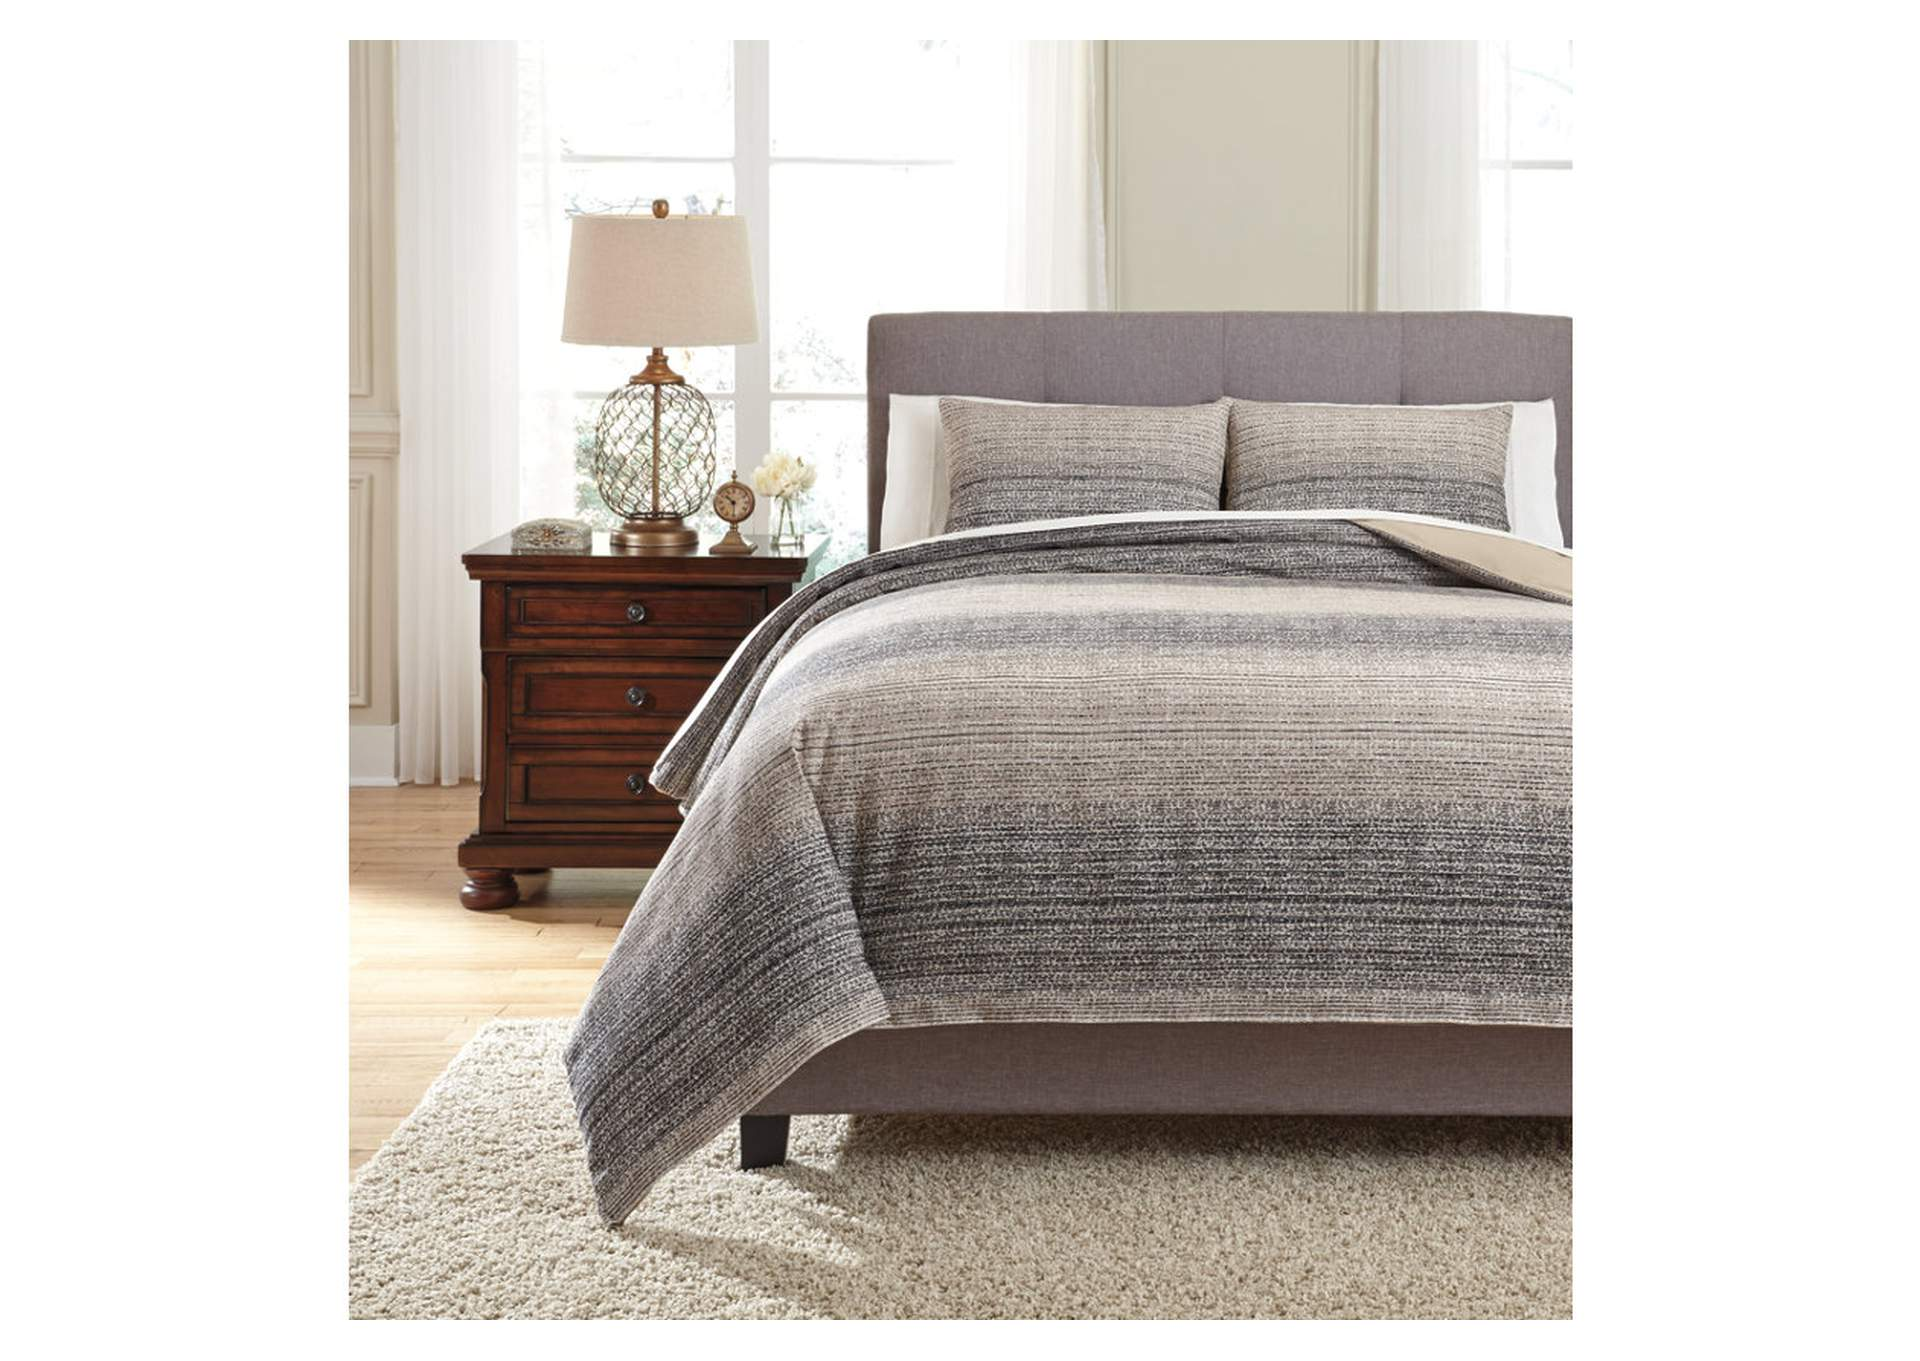 Arturo Natural/Charcoal King Duvet Cover Set,48 Hour Quick Ship